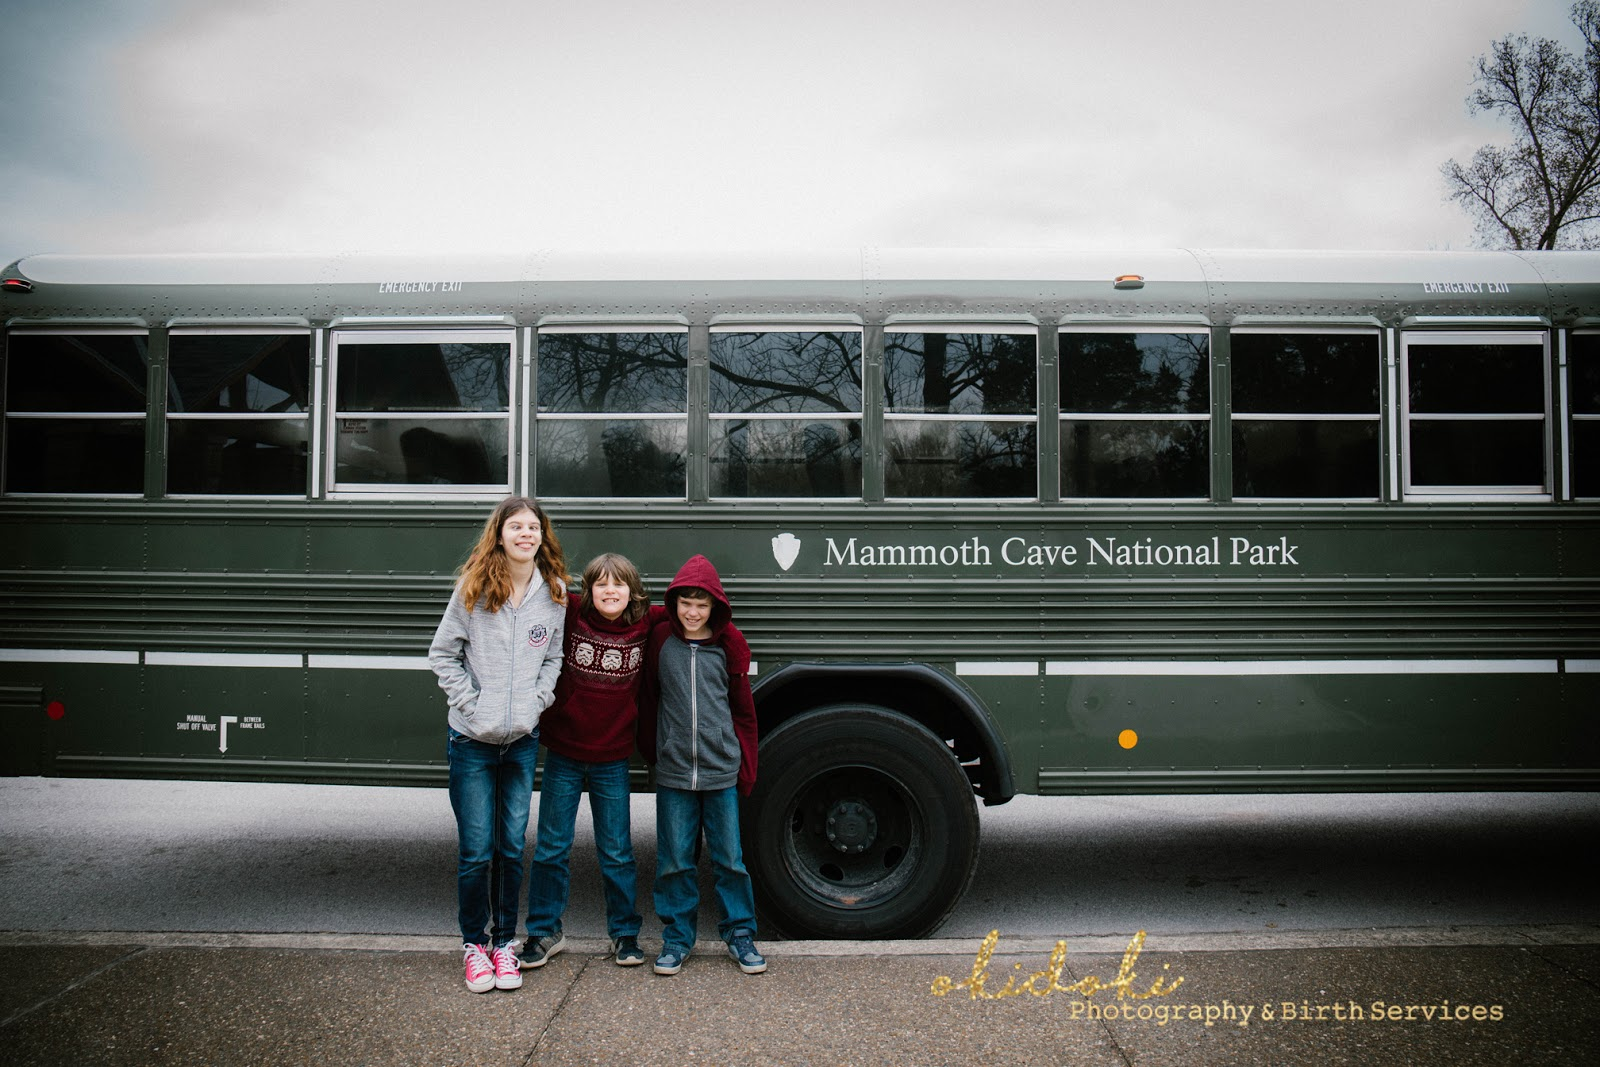 mammoth cave single asian girls Personal ads for mammoth cave, ky are a great way to find a life partner, movie date, or a quick hookup personals are for people local to mammoth cave, ky and are for ages 18+ of either sex find .